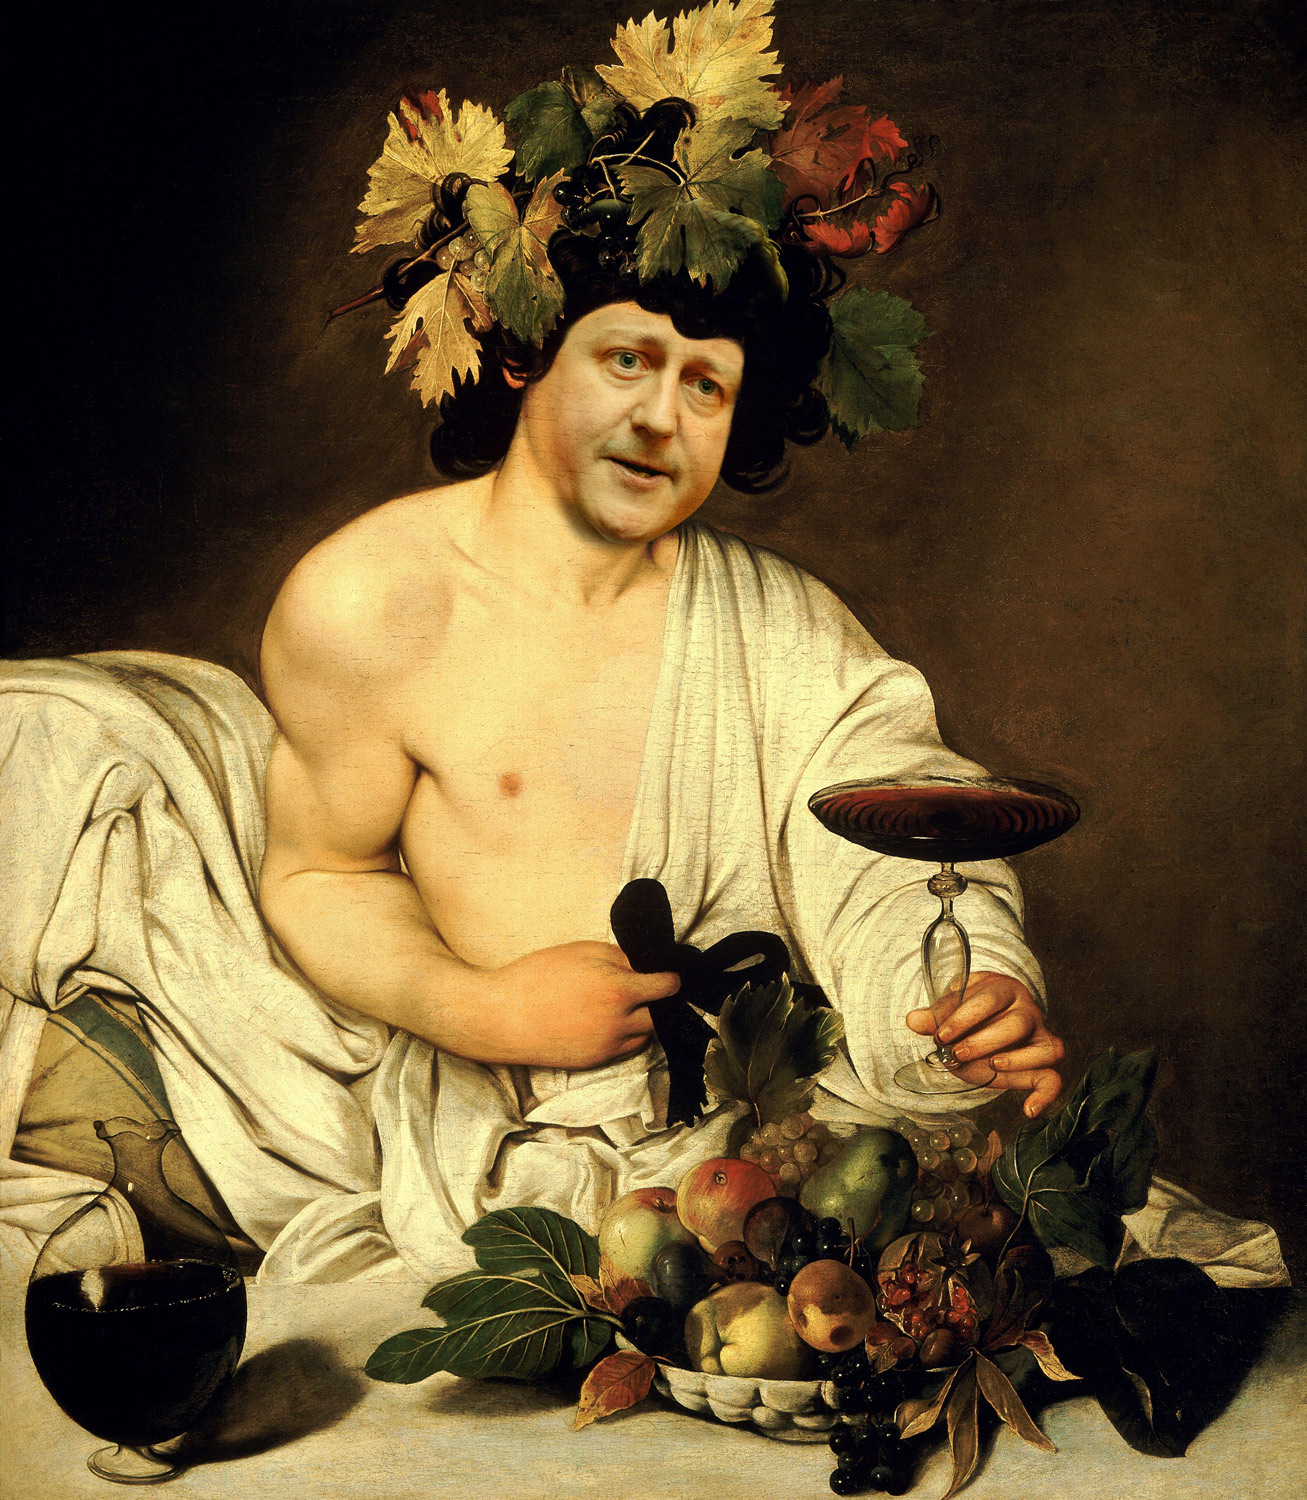 David Cameron in and as Bacchus by Baroque painter Carravagio